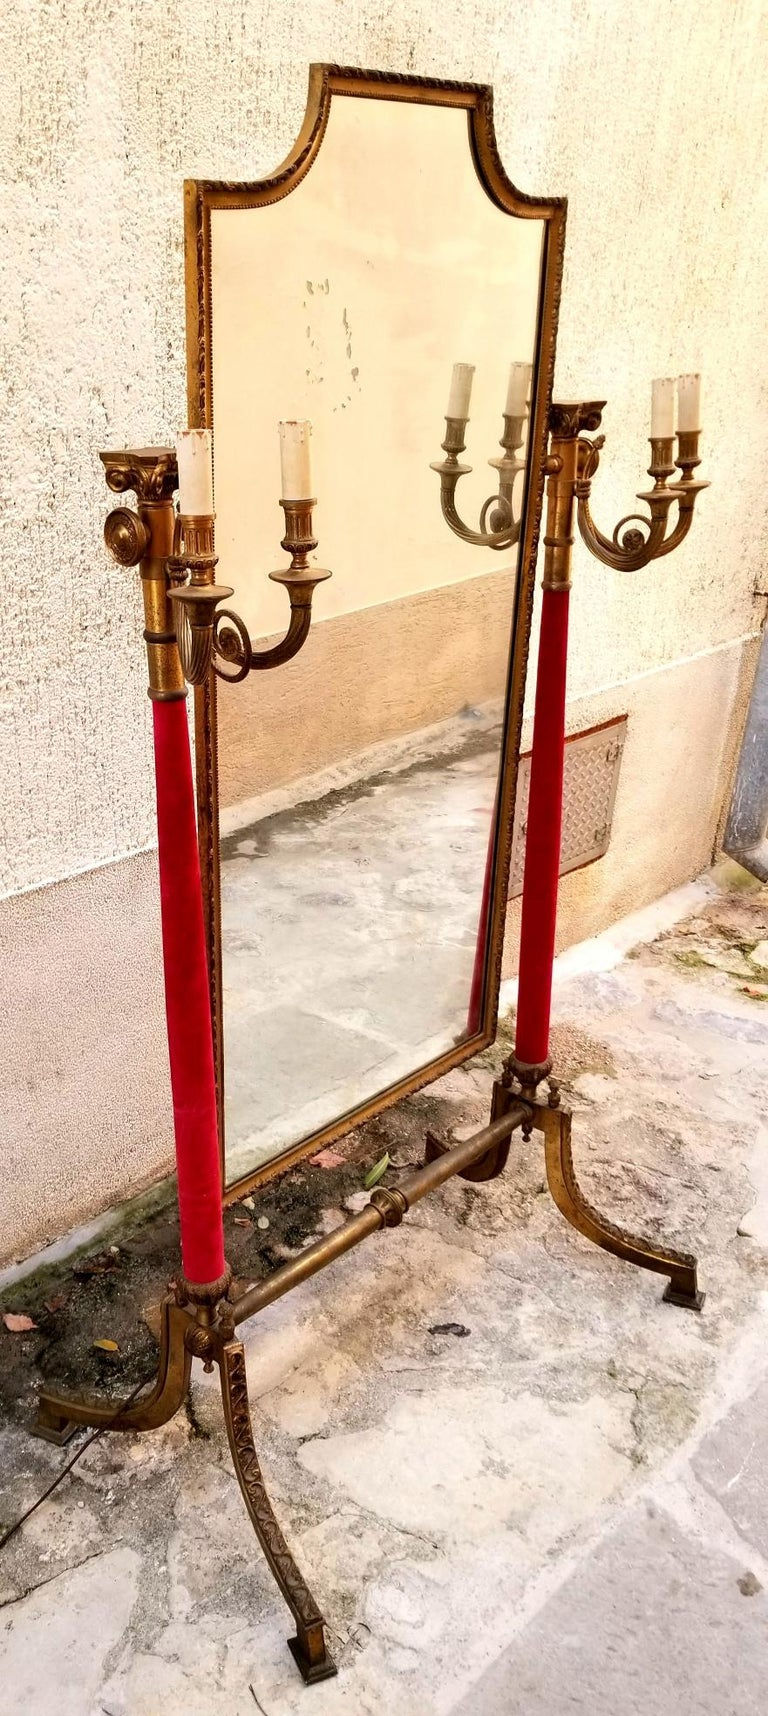 Italian brass mirror from Venice boutique at San Marco square. Mirror is a full size length and adjustable like a chevalier mirror. The mirror itself is 53 height and 25 width. The candle cover is hand carved wood and the rest is brass. The red